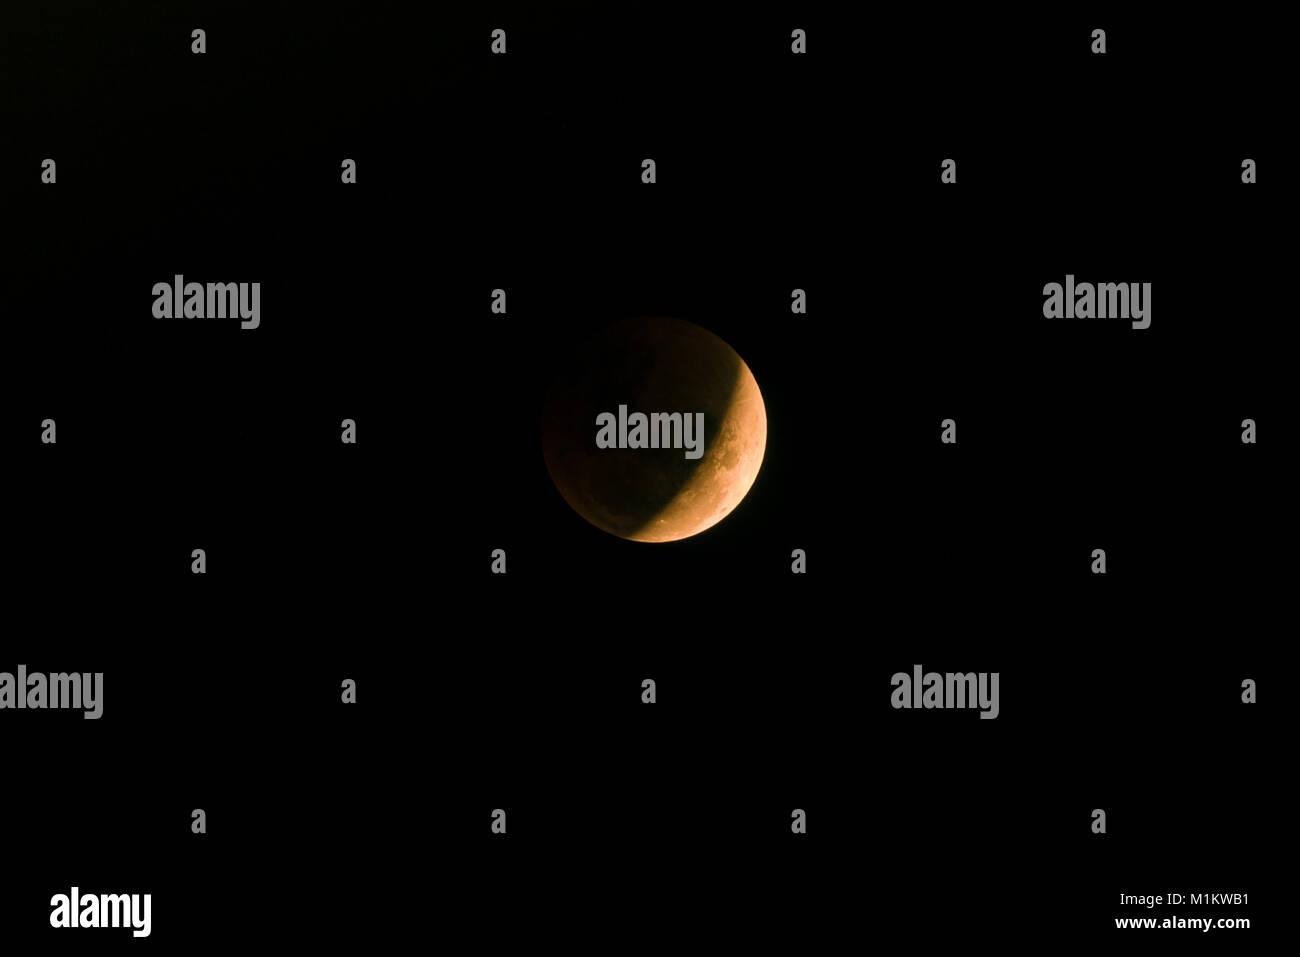 Singapore, Singapore, Jan 31, 2018: The rare `super blue blood moon` near a total lunar eclipse viewed in Singapore - Stock Image